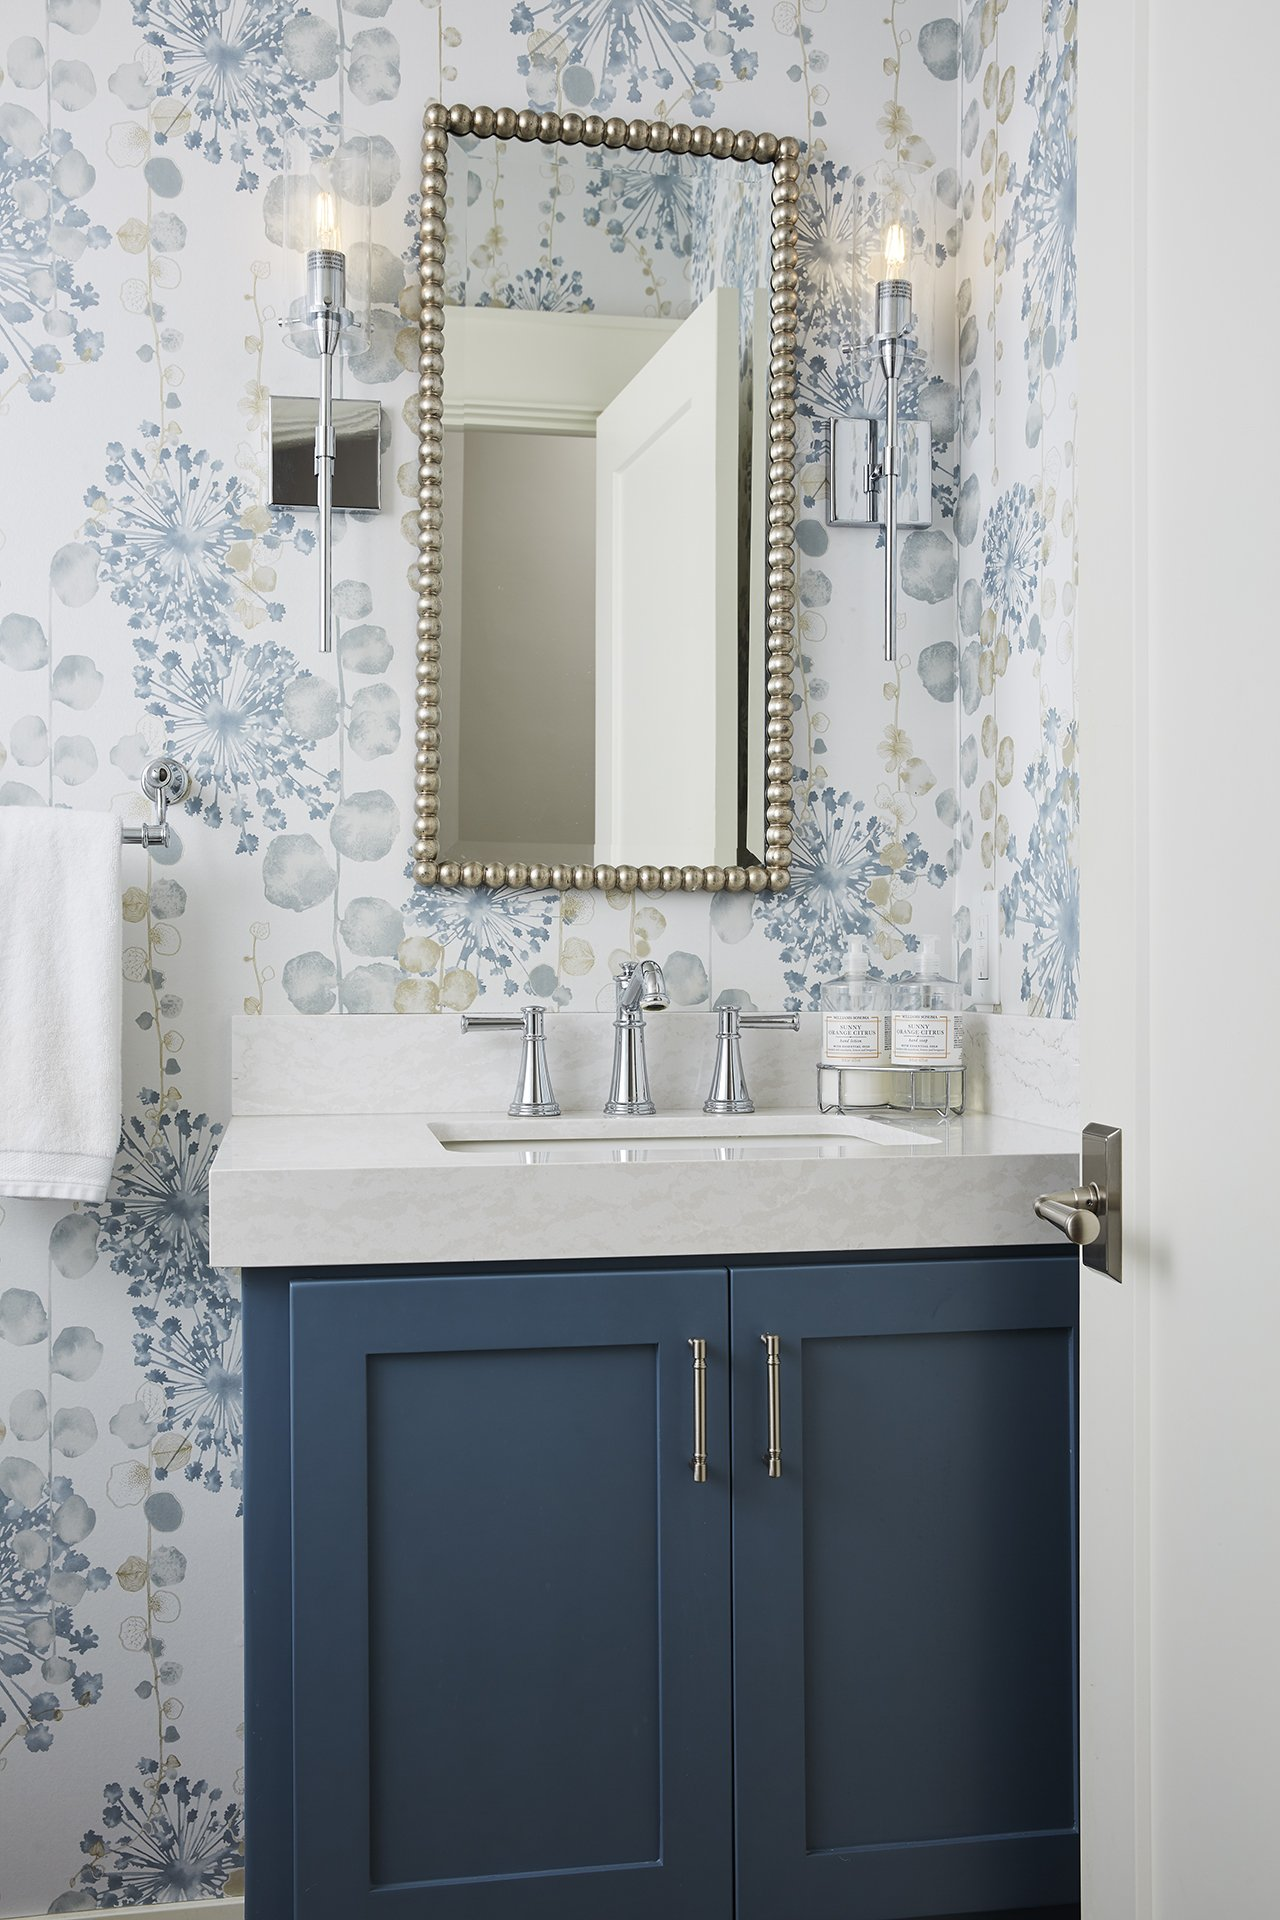 A chic bathroom pairs a soft floral wallpaper with a bold blue vanity for a stunning and fresh aesthetic that is both stylish and functional. / Design by Sneak Peek Design